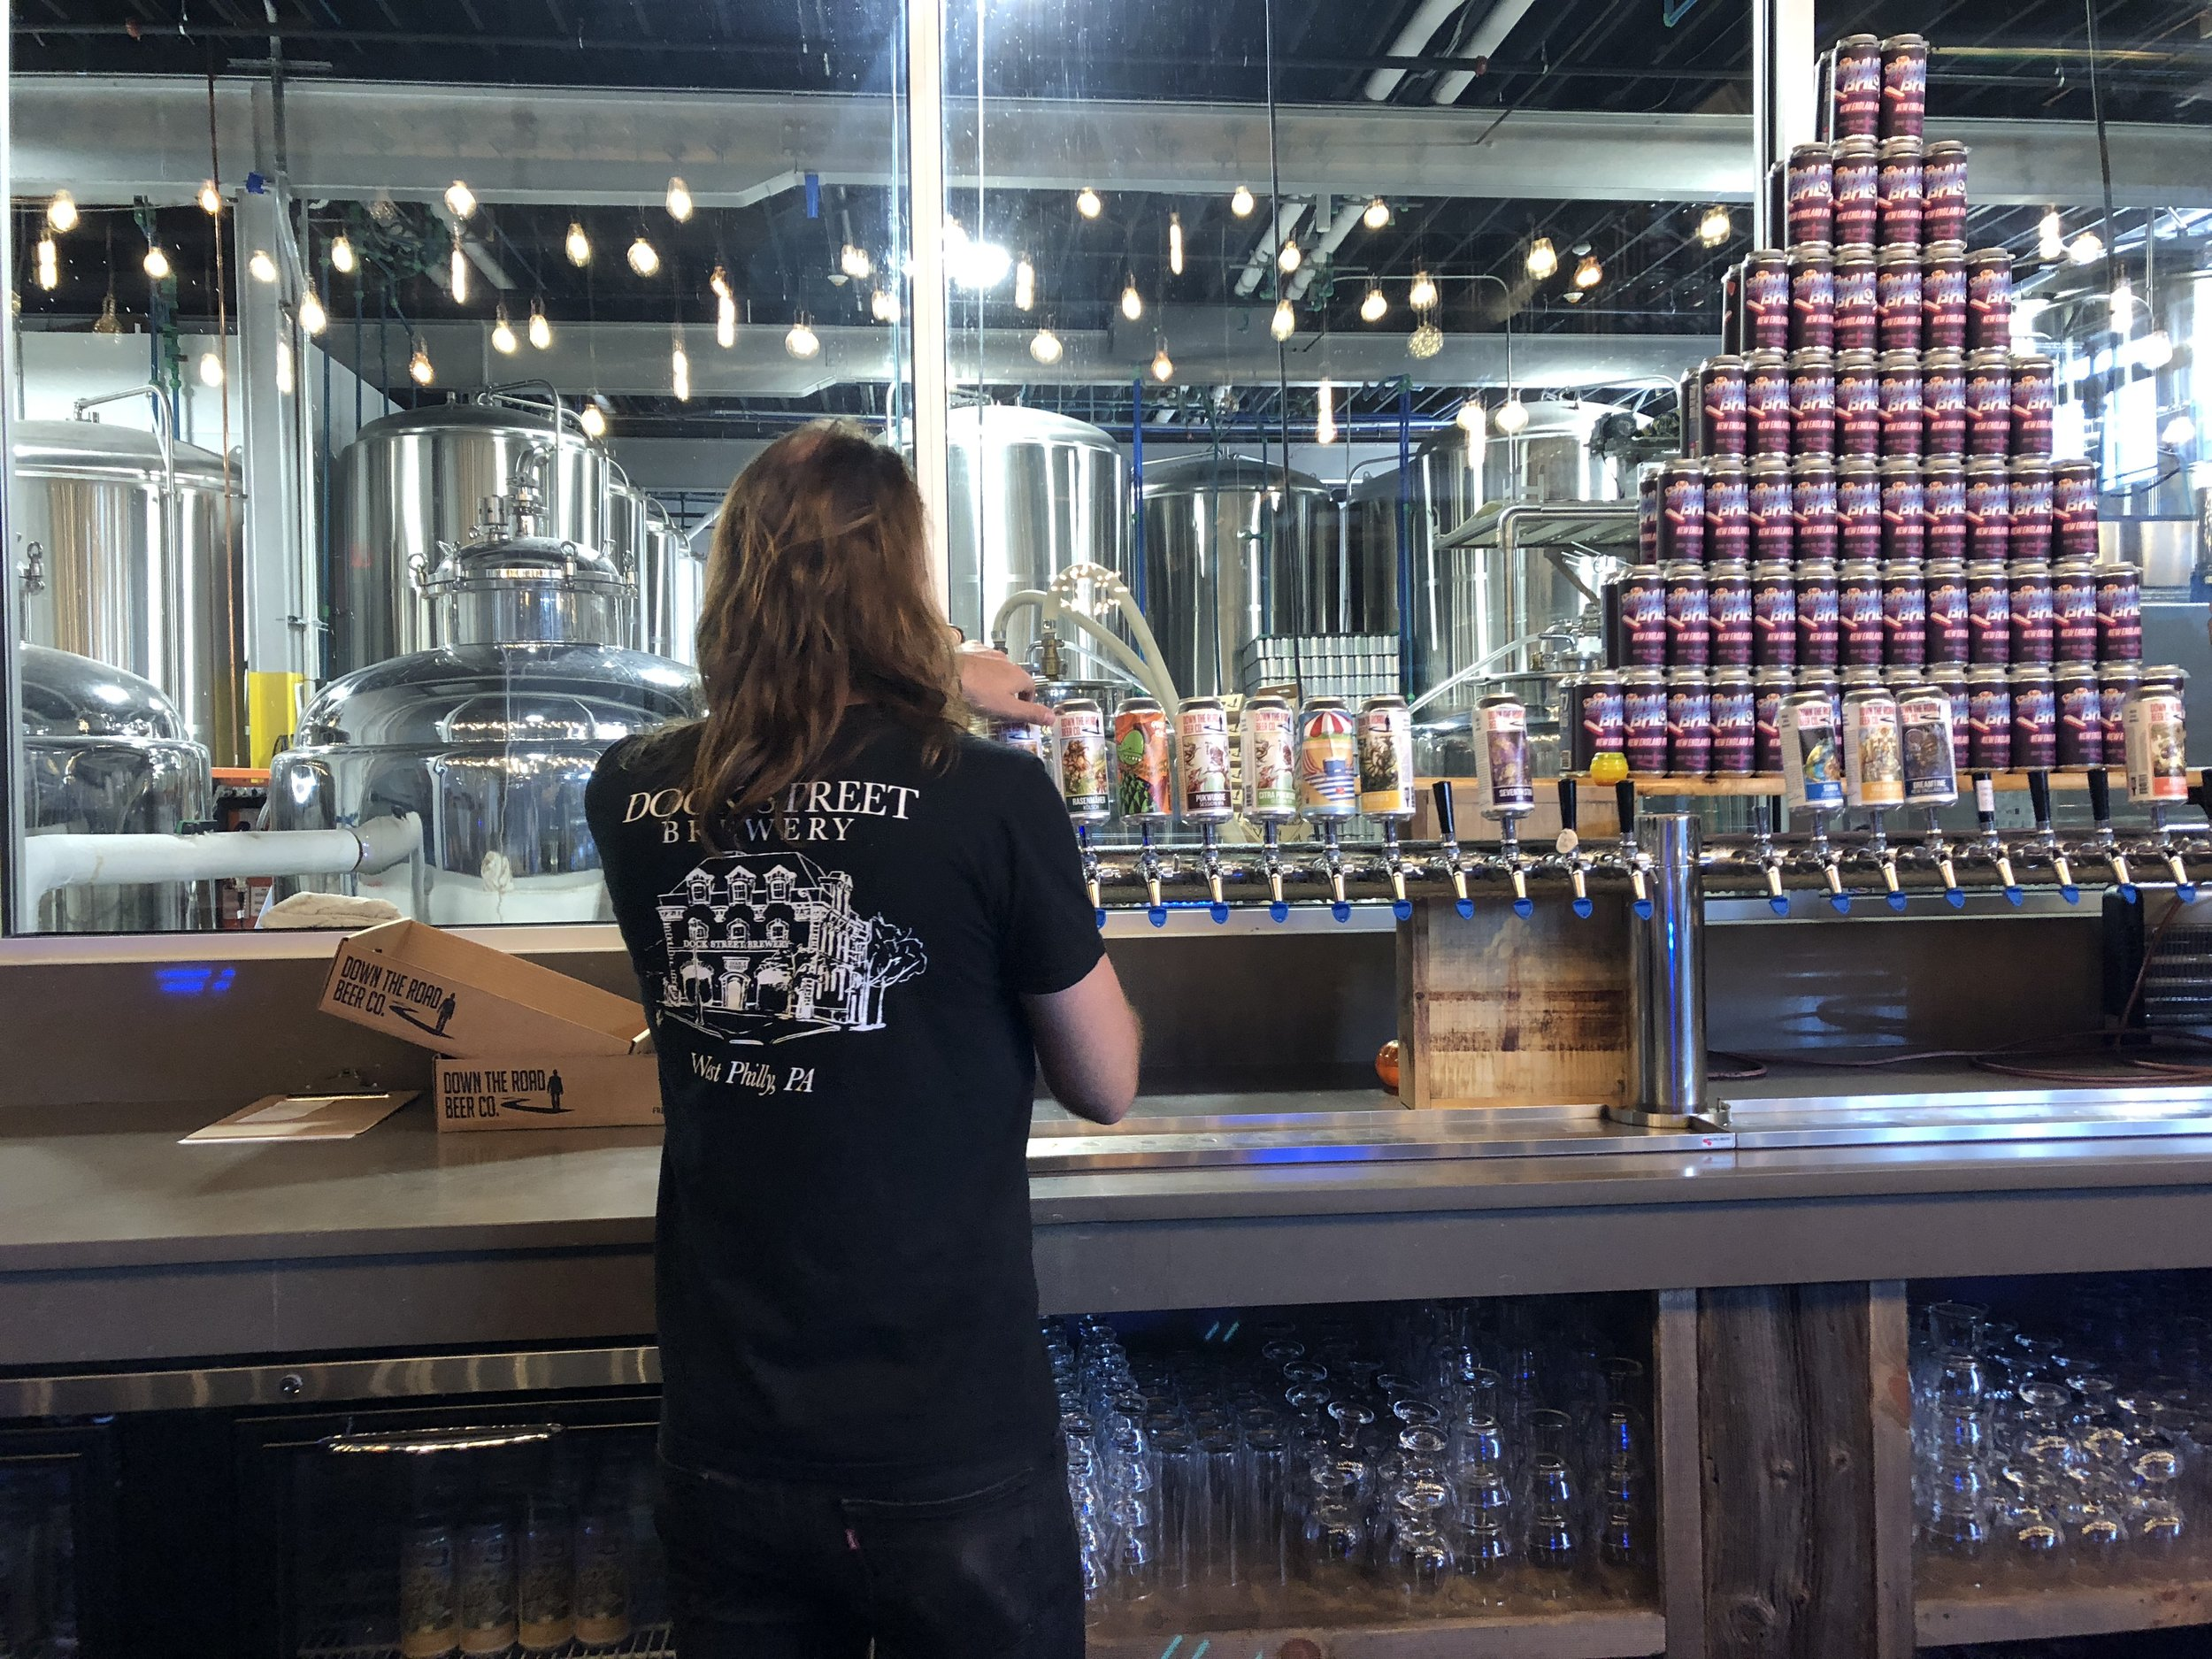 Mark Russell, our head brewer, made himself right at home at DTR pouring some brews on brewing breaks.